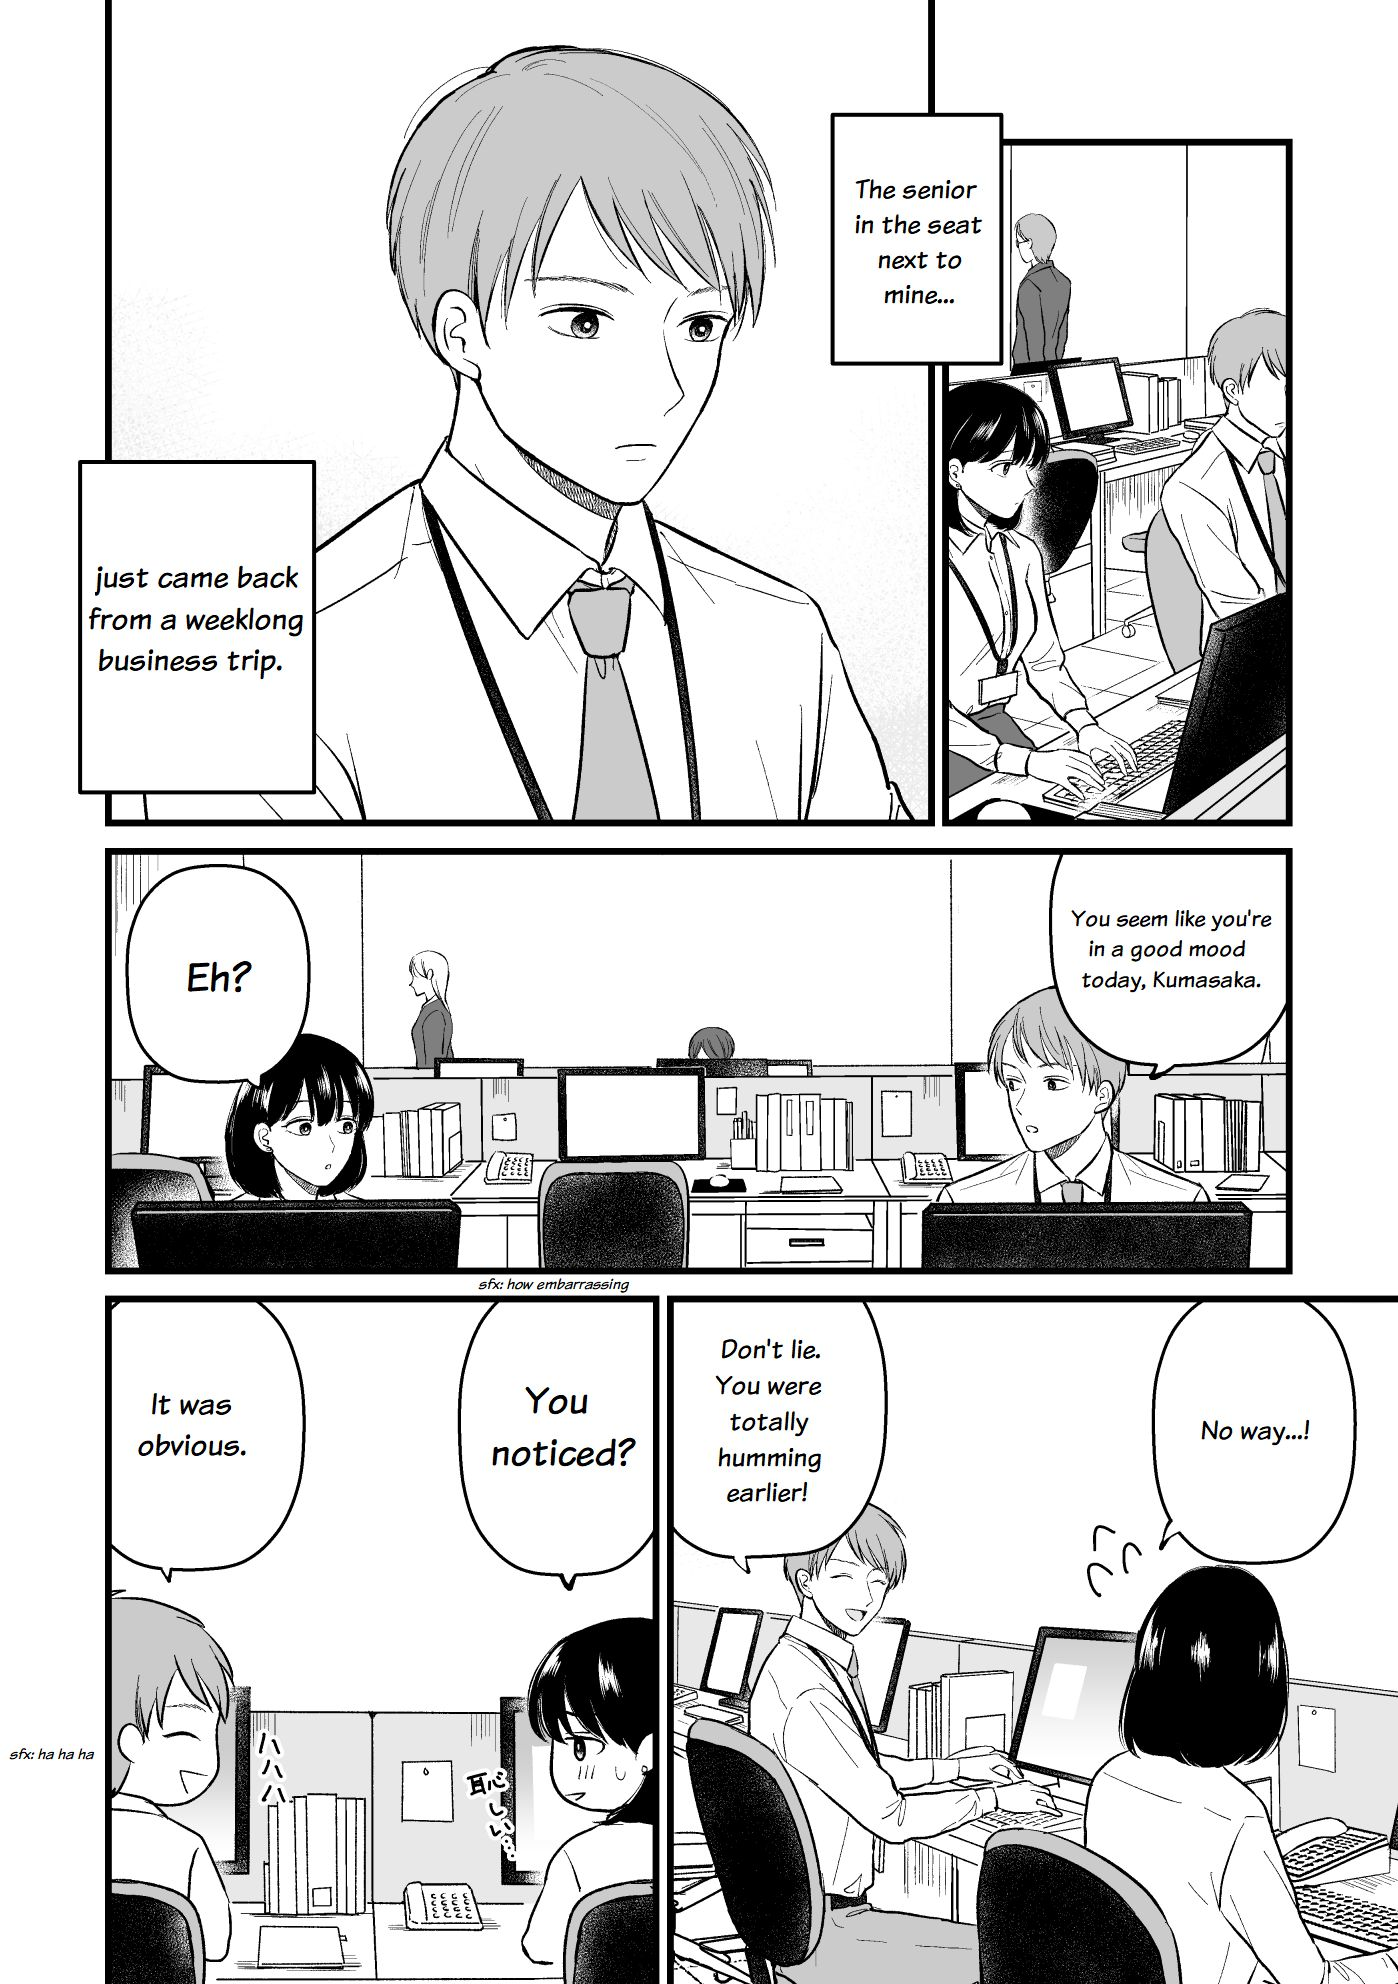 The Senior and Junior Broke up Three Months Ago - chapter 9.5 - #1